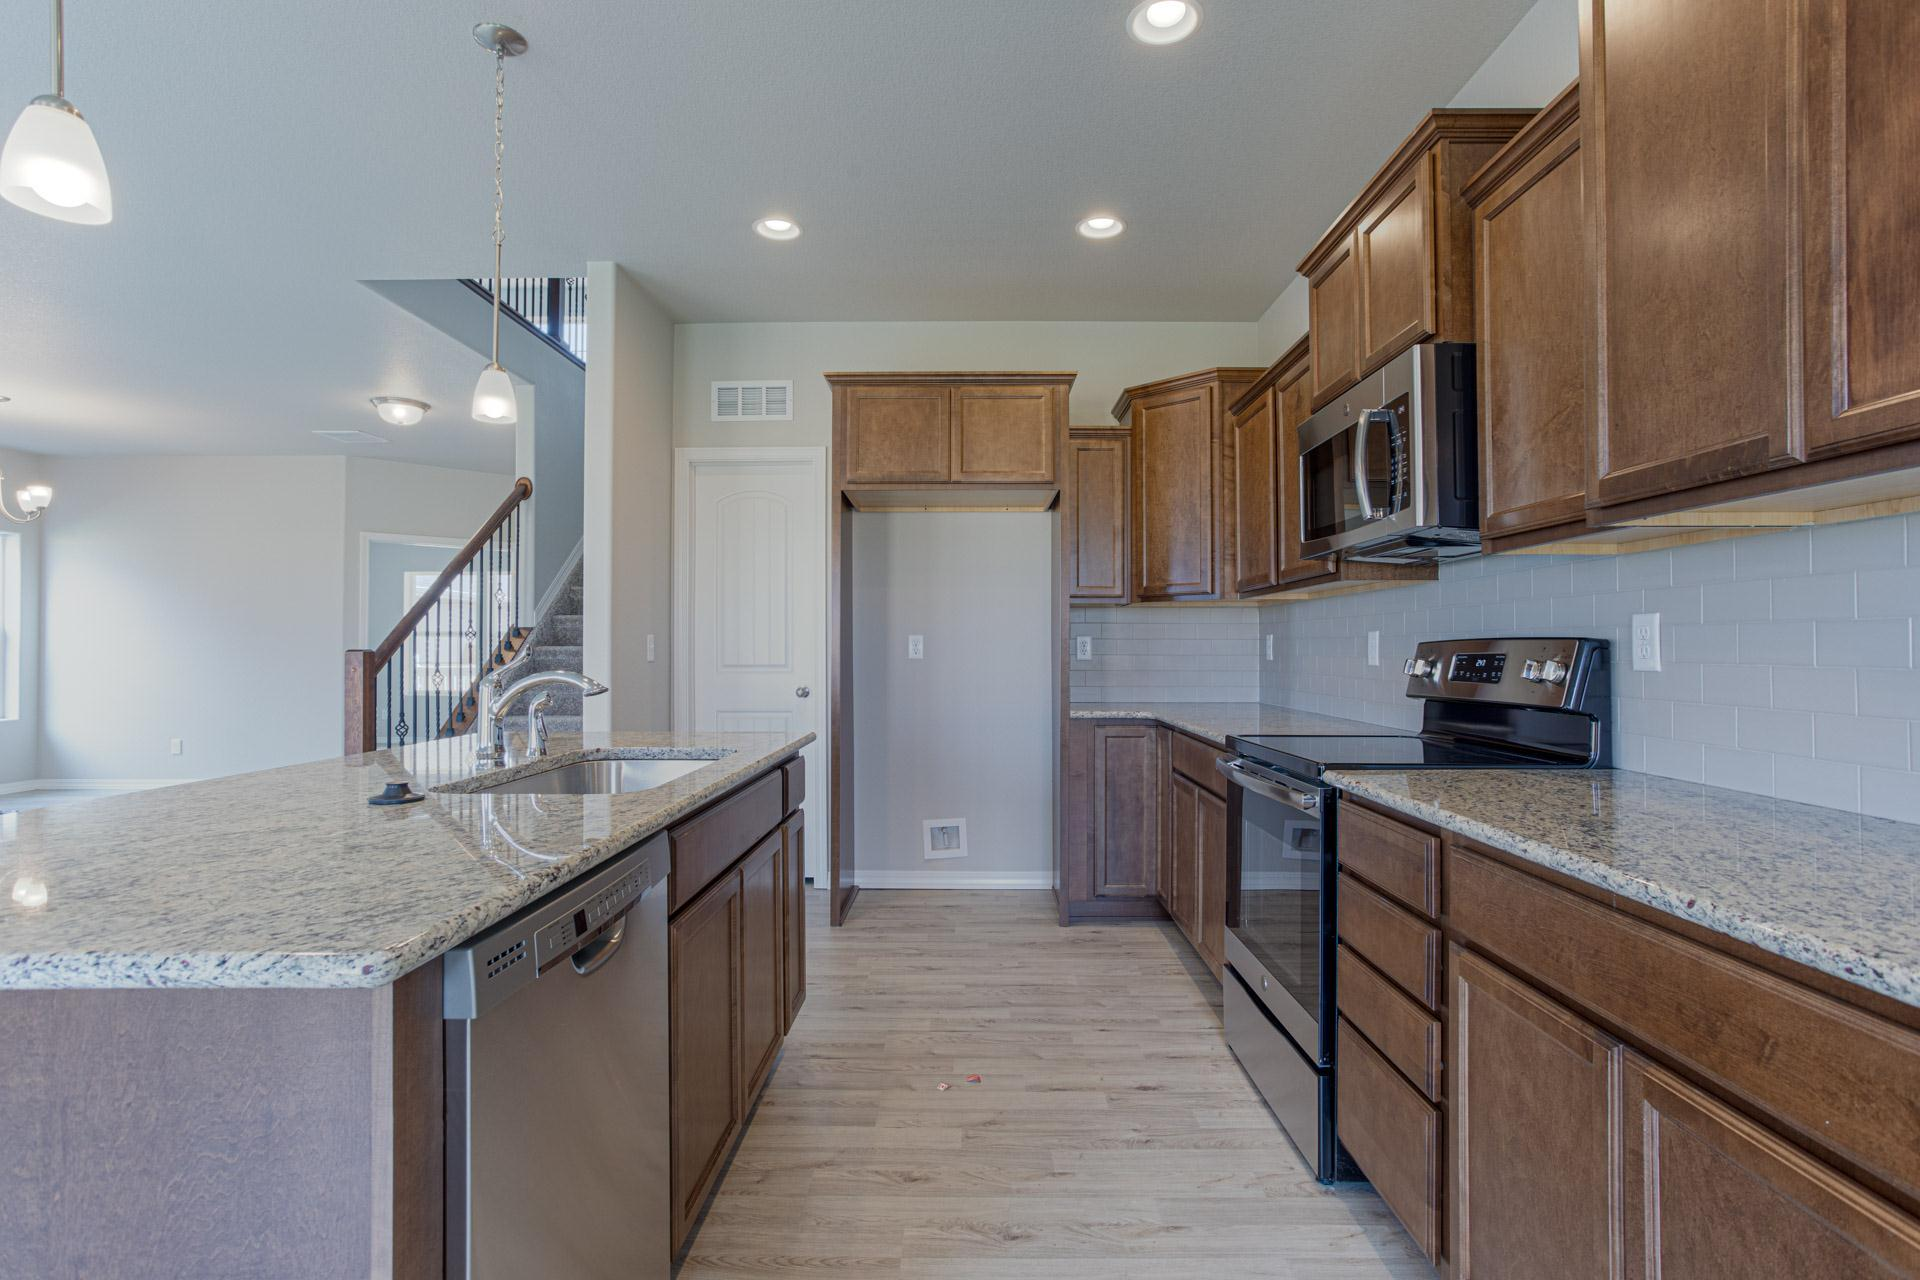 Kitchen featured in the Wilmington By Challenger Homes in Colorado Springs, CO